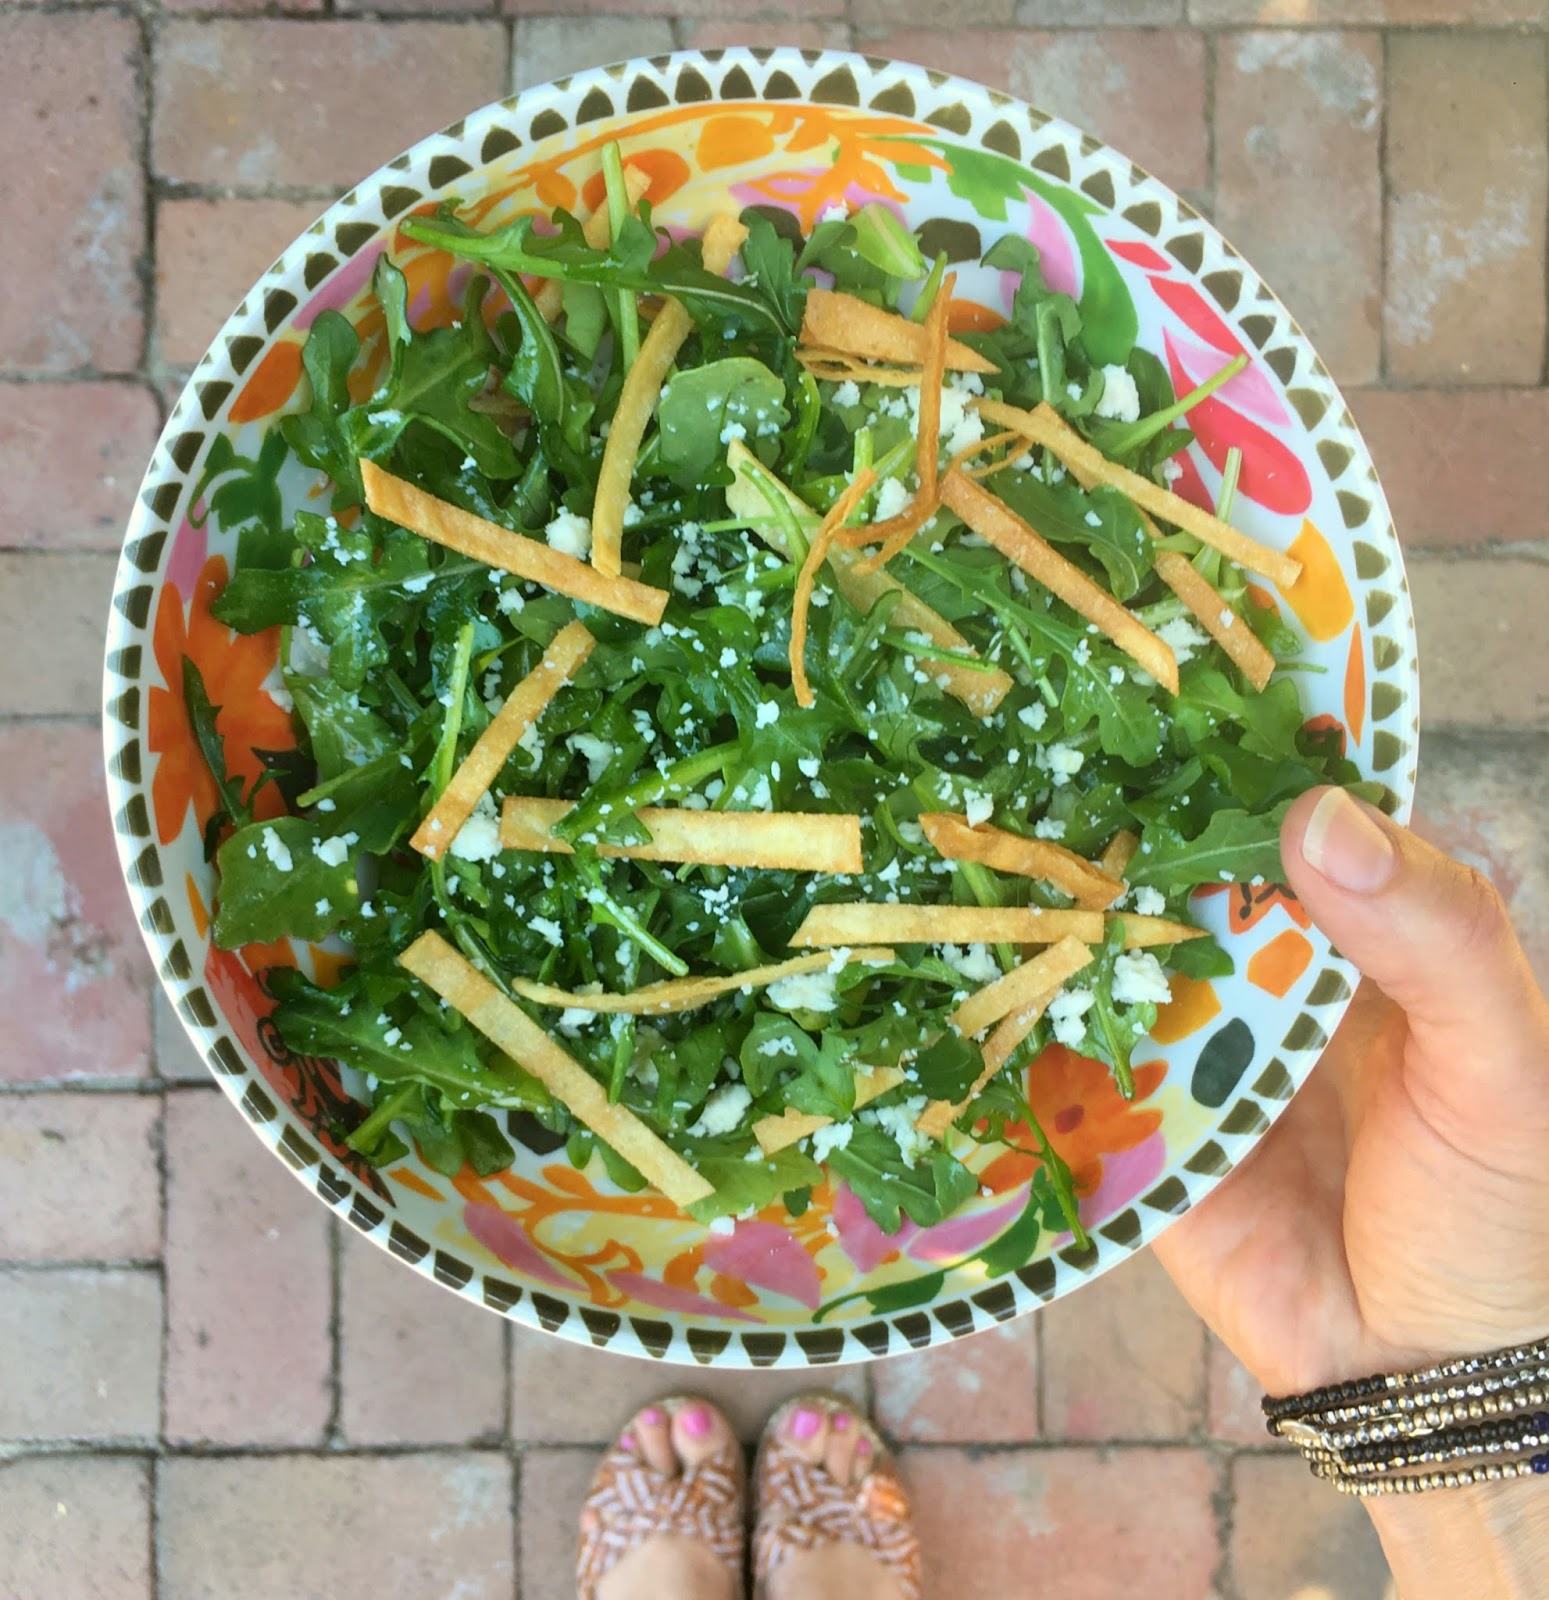 Arugula Salad Within Lime Dressing 5 Oz Arugula 1 4 Cup Crumbled Cotija Cheese Crispy Fried Tortillas For Topping I Usually Use 5 Small Corn